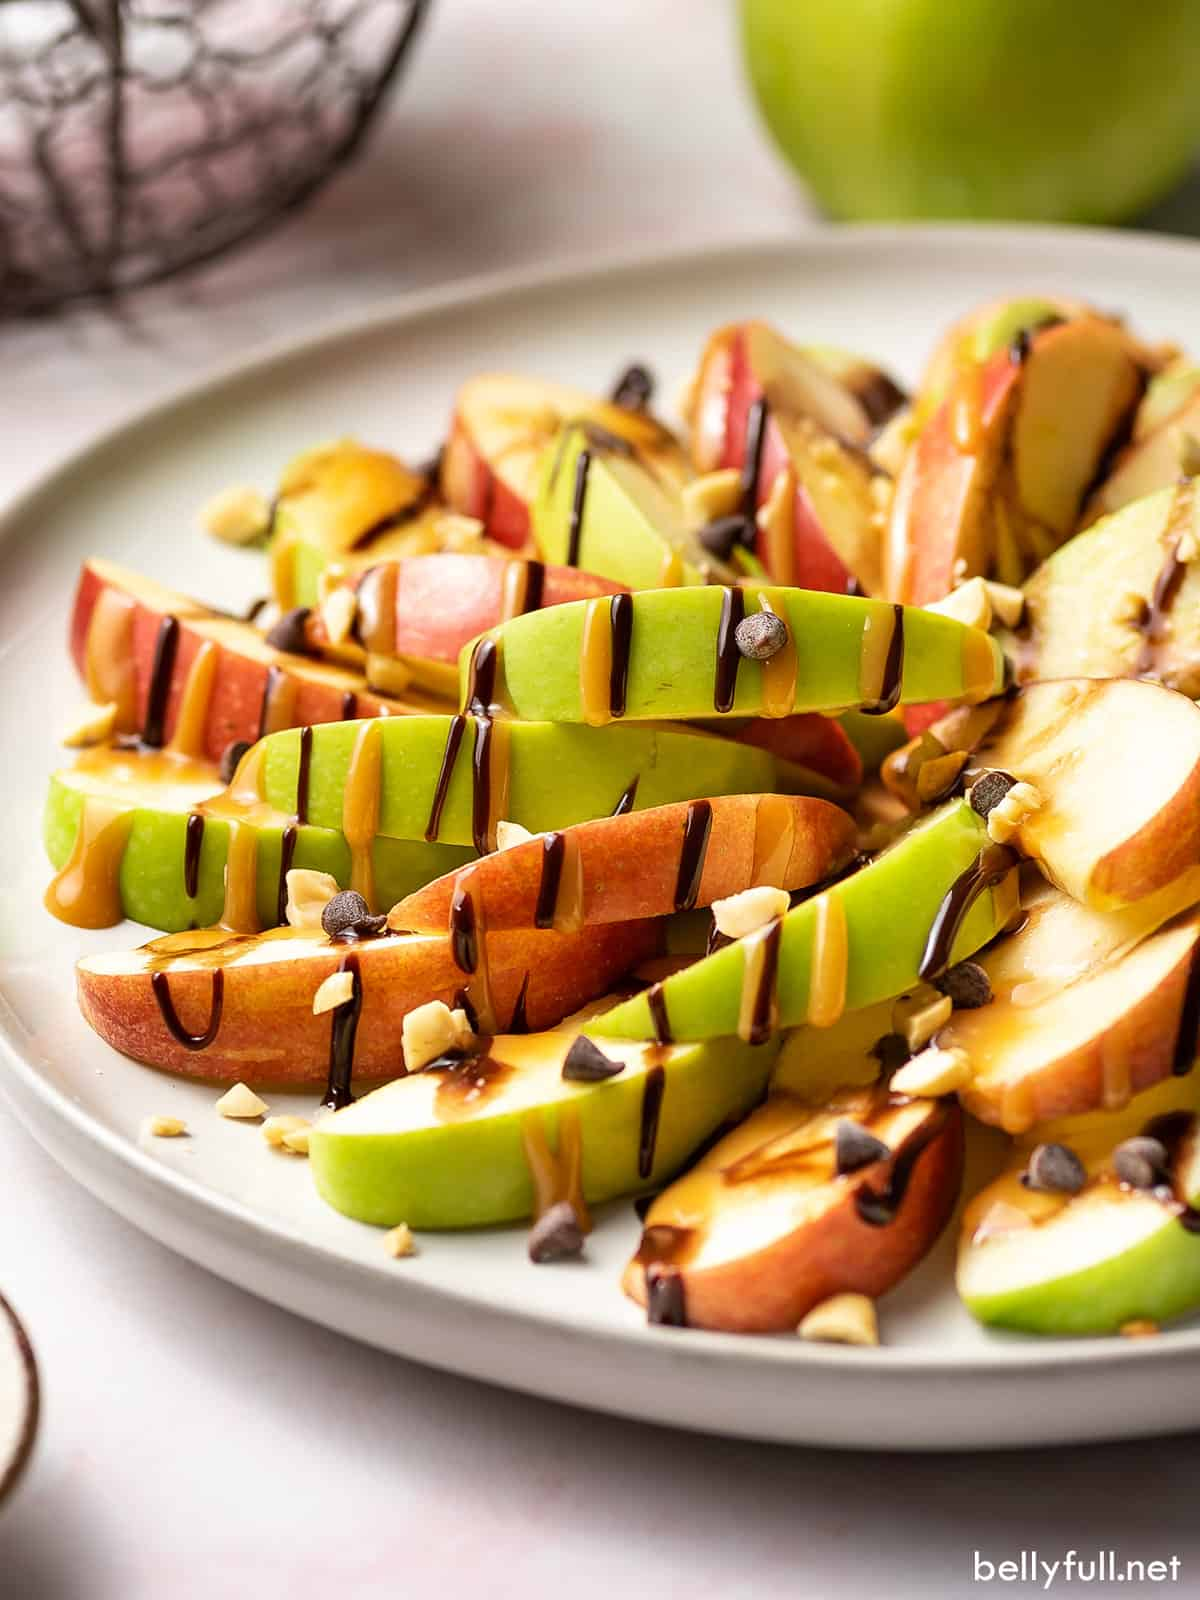 A plate of caramel apple nachos with hot fudge and caramel sauce